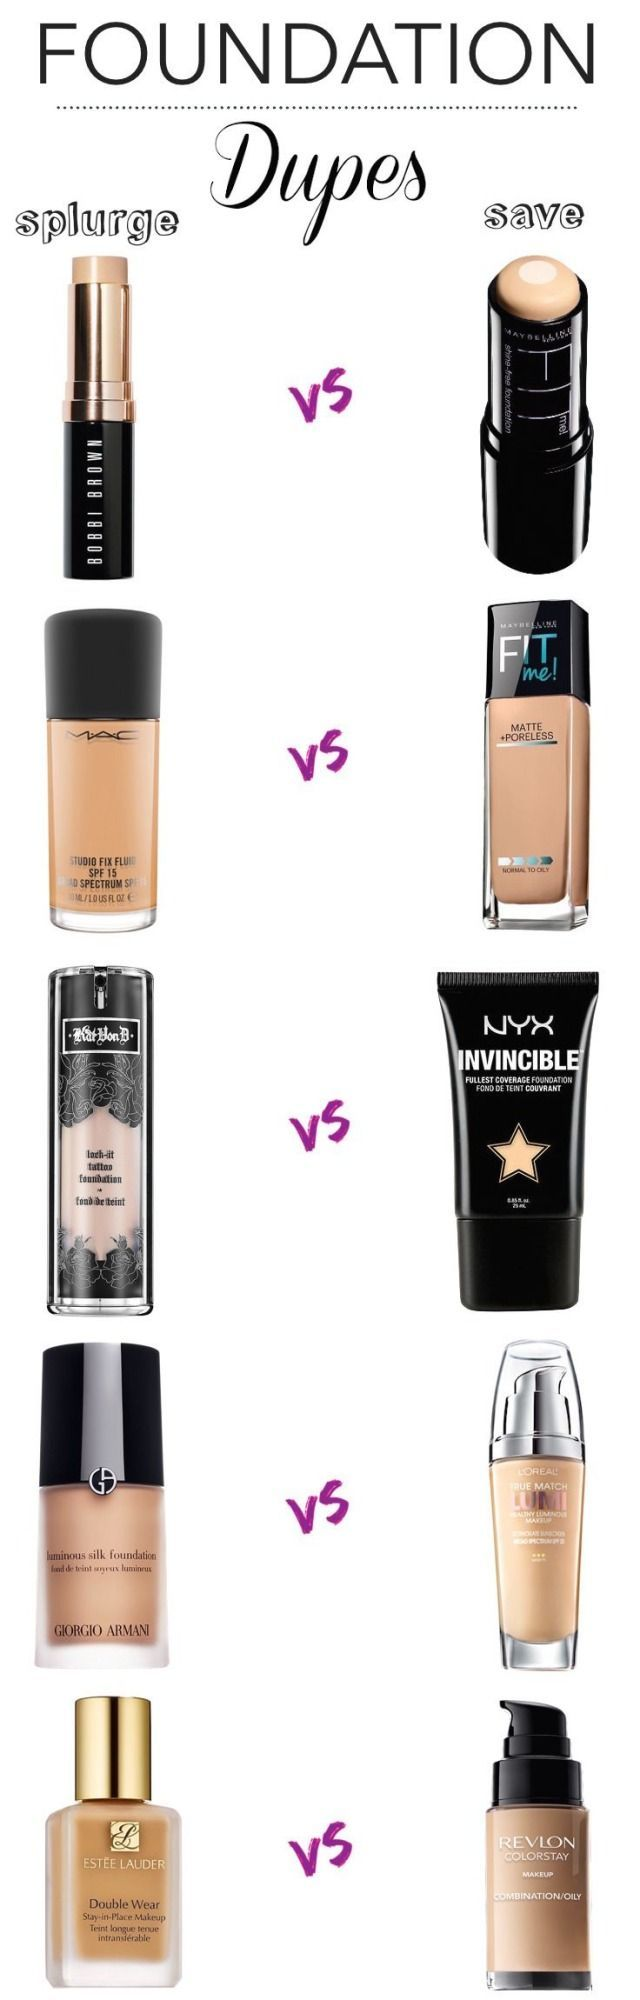 As much as we love to dish out big bucks on our makeup, it's not always feasible to splurge on a $50  bottle of foundation! Here are 10 of the best drugstore foundation dupes that work almost as well as their high-end counterparts! Beauty & Personal Care - Makeup : Eyes - Eyeshadow - Makeup - http://amzn.to/2jRlRZU